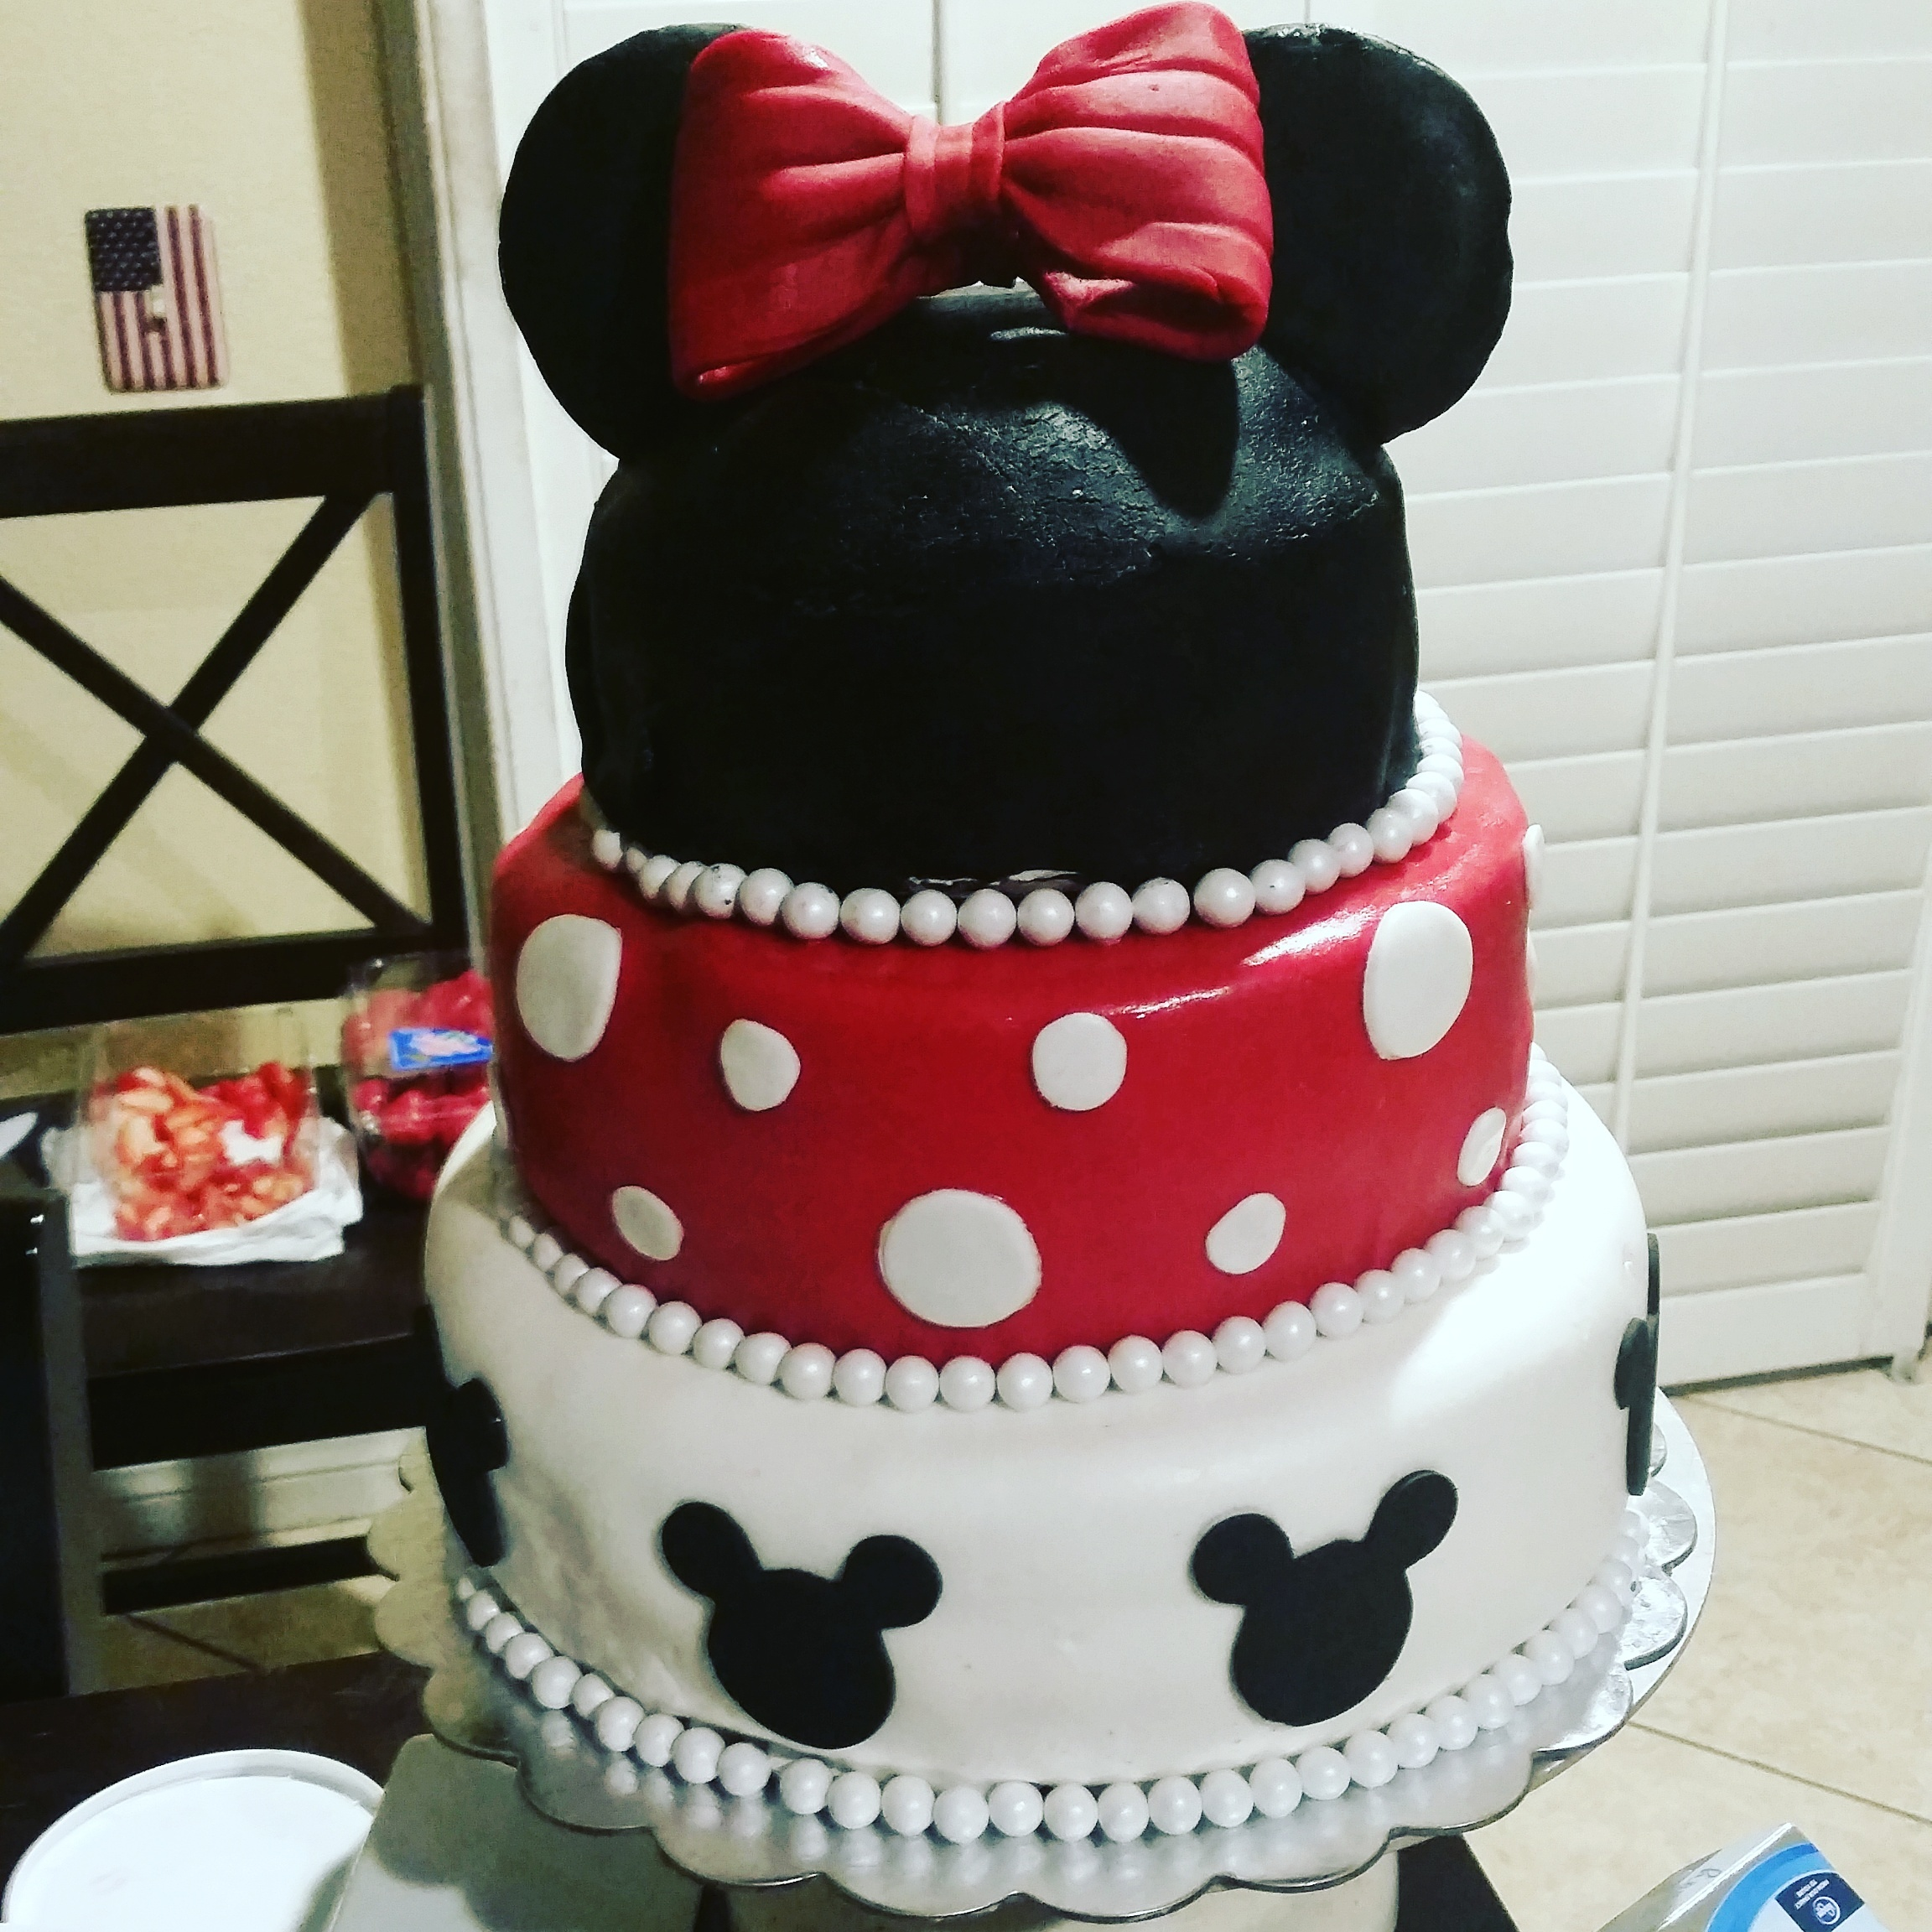 Minnie mouse cake birthday cake cute cake gotcakes want cakes